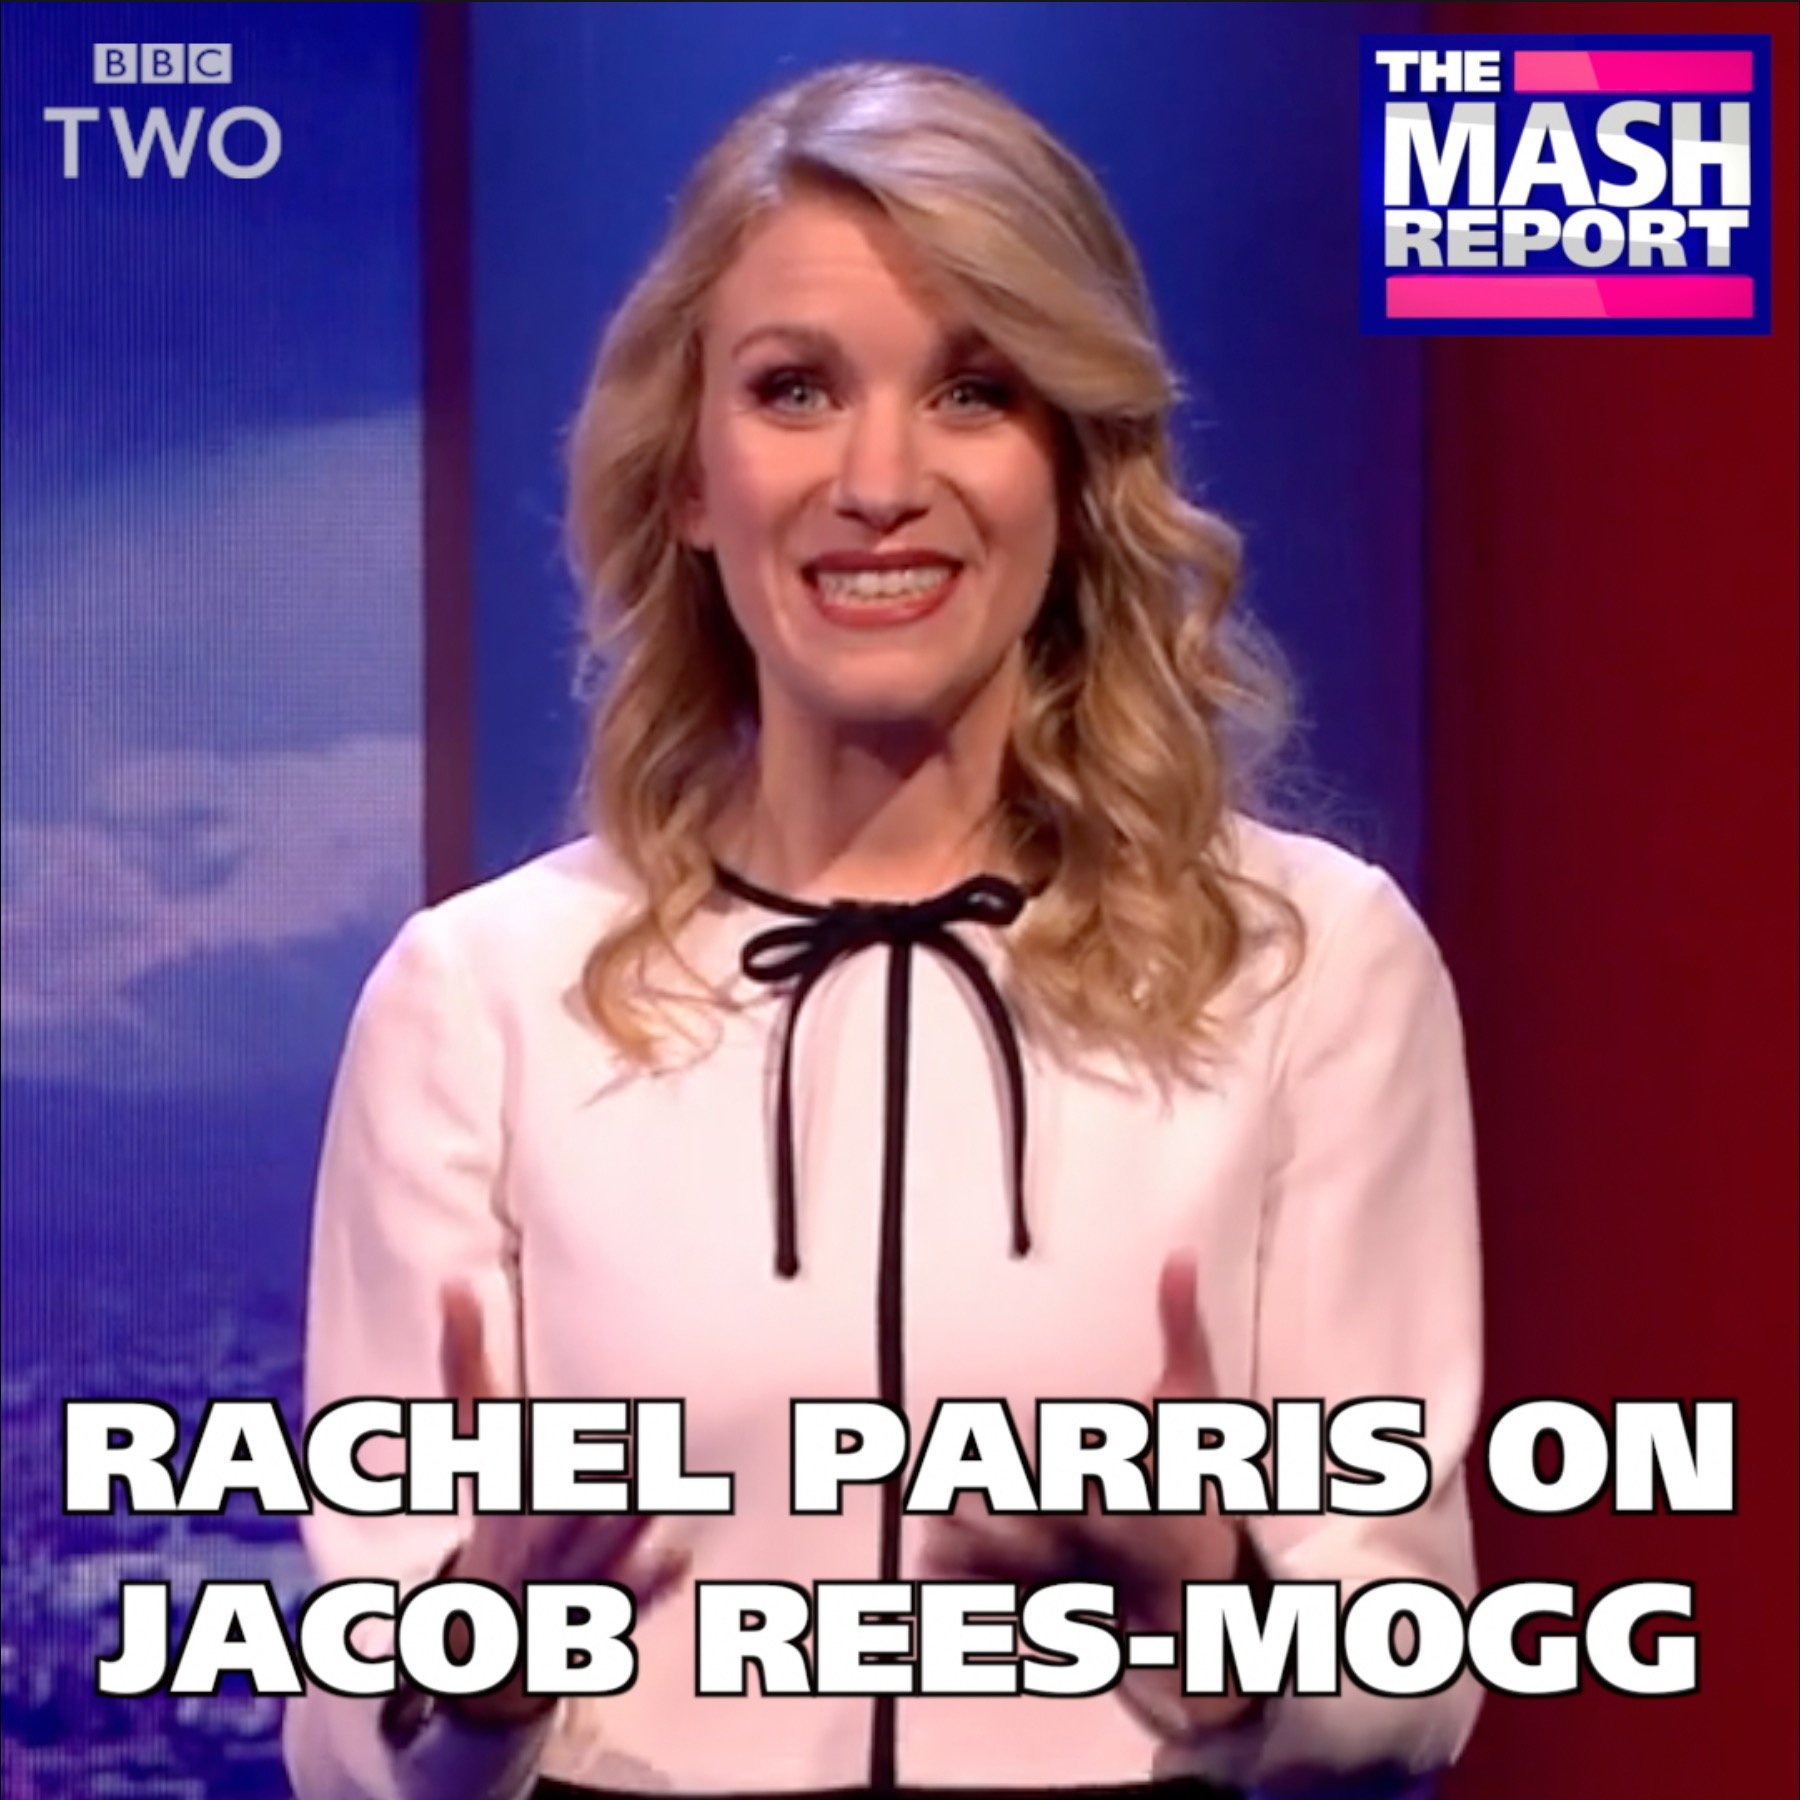 And now over to @rachelparris for a look at Jacob Rees-Mogg, minister for the 19th century. #TheMashReport 💥  https://t.co/OlJhCAmAef